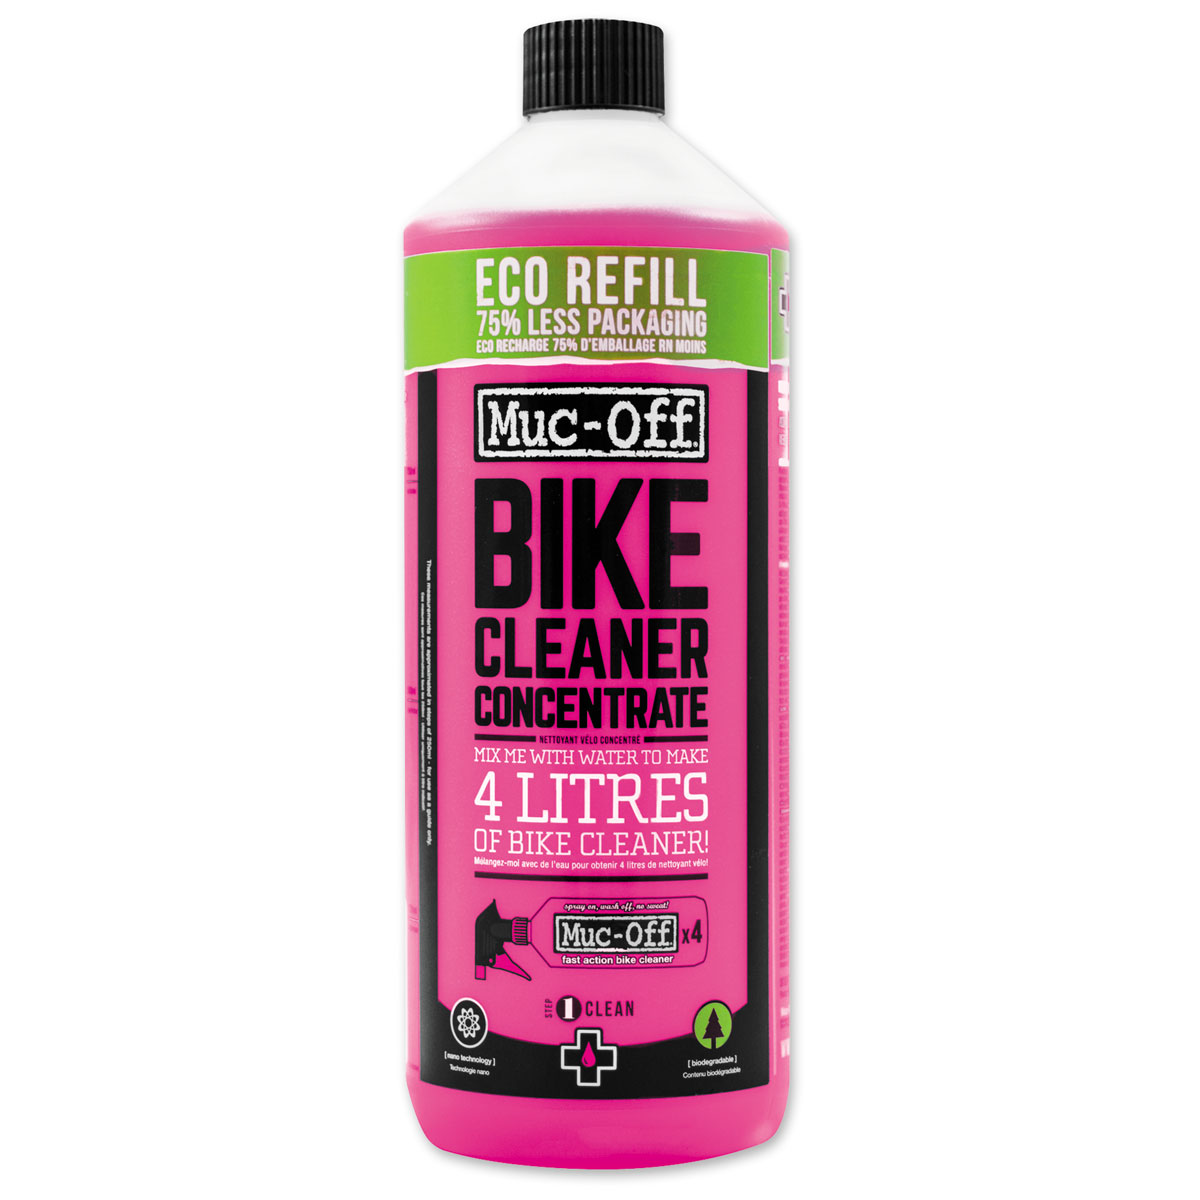 Muc-Off Motorcycle Cleaner Concentrate 1 Liter